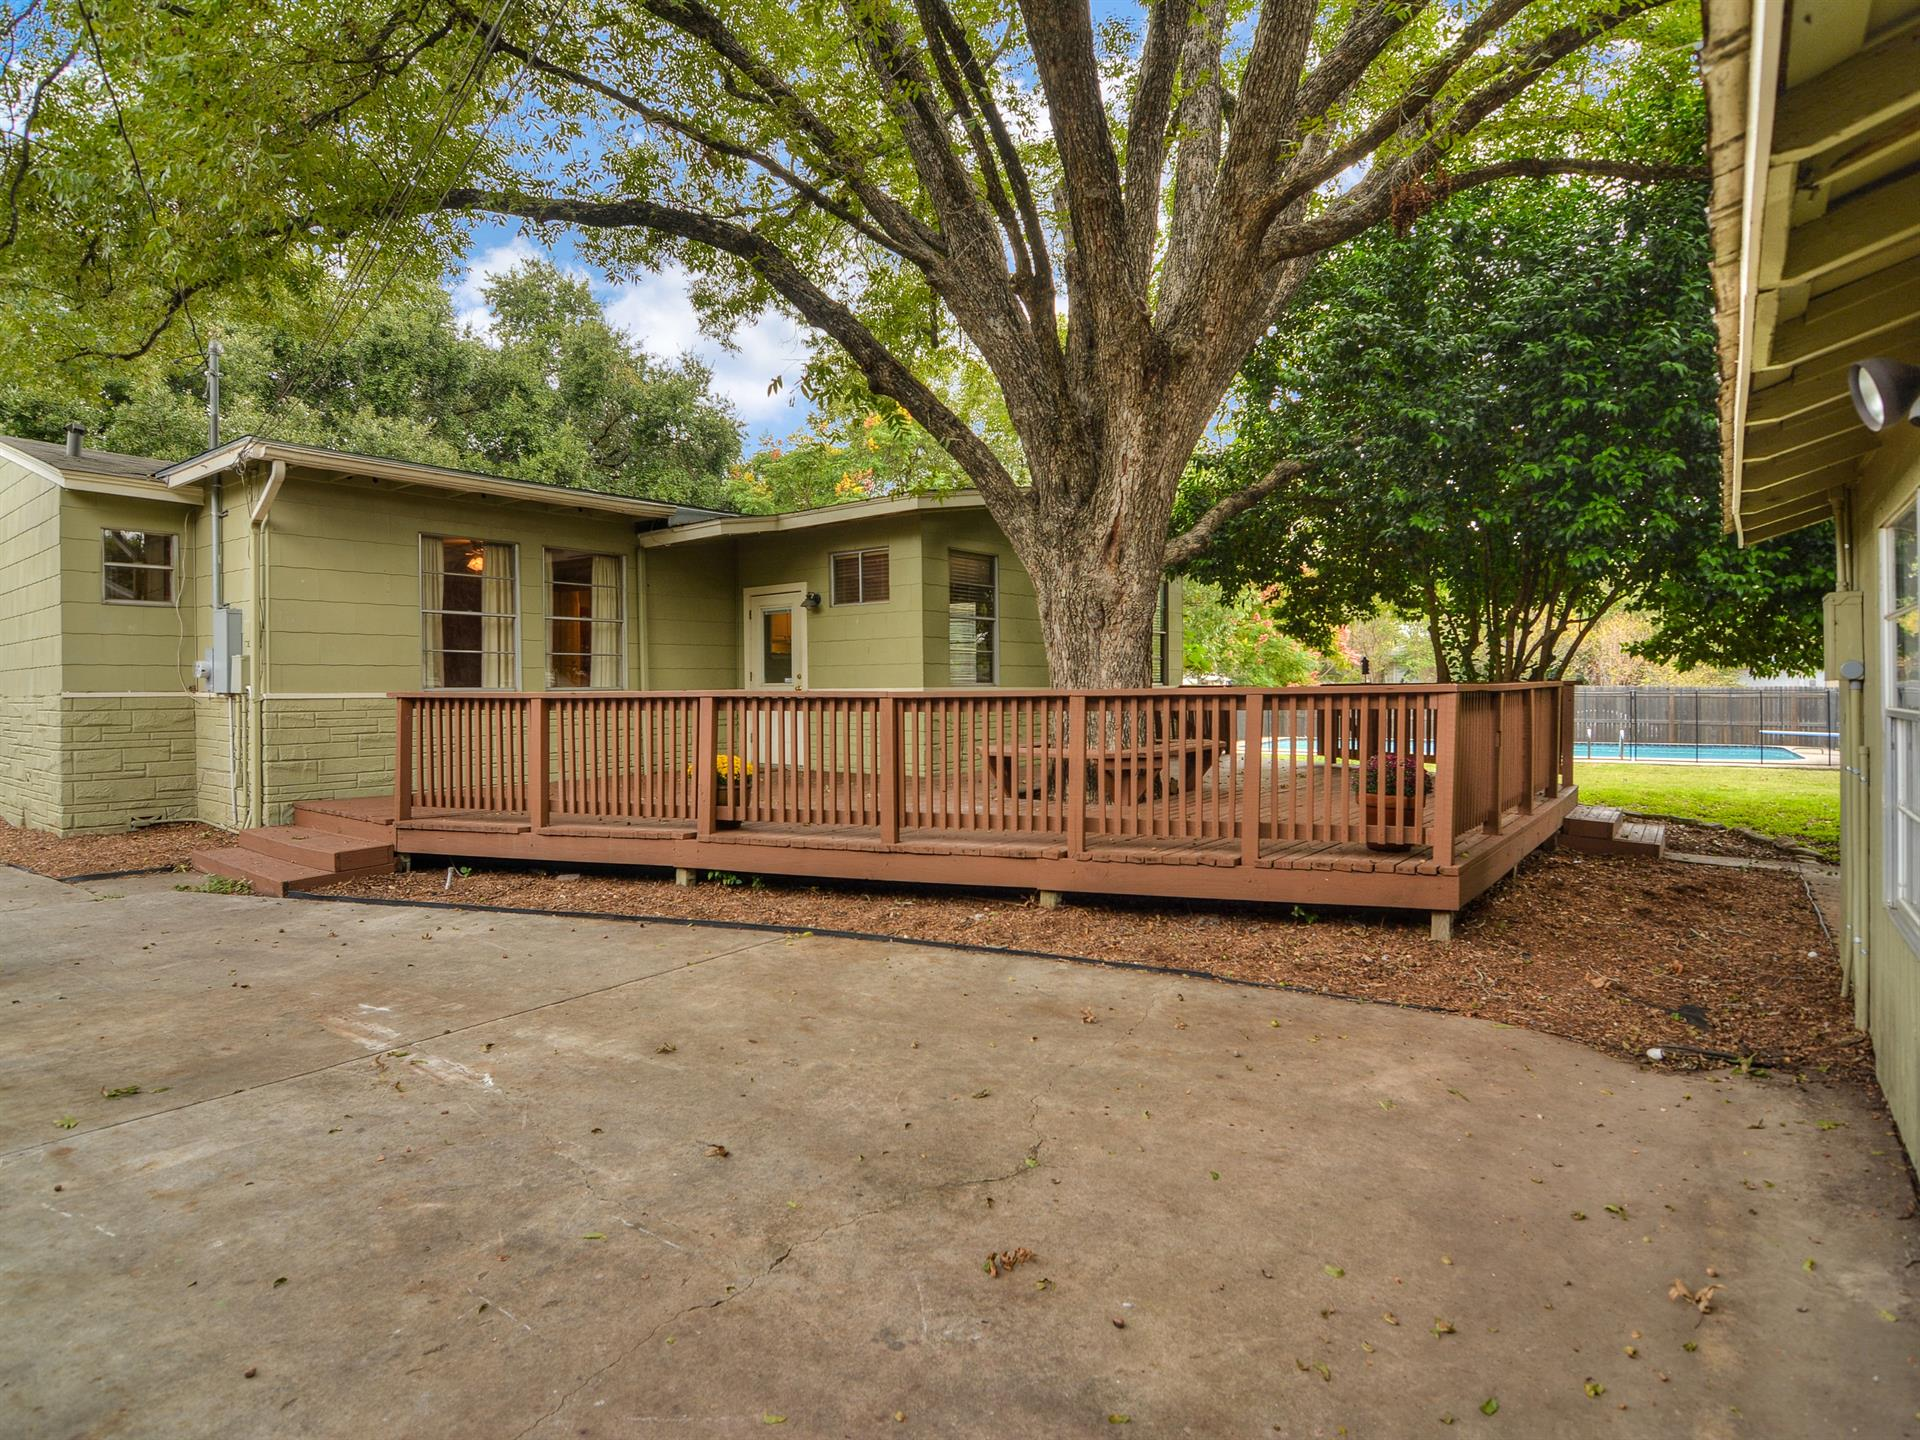 Additional photo for property listing at 264 Larchmont Drive 264 Larchmont Drive San Antonio, Texas 78209 Estados Unidos